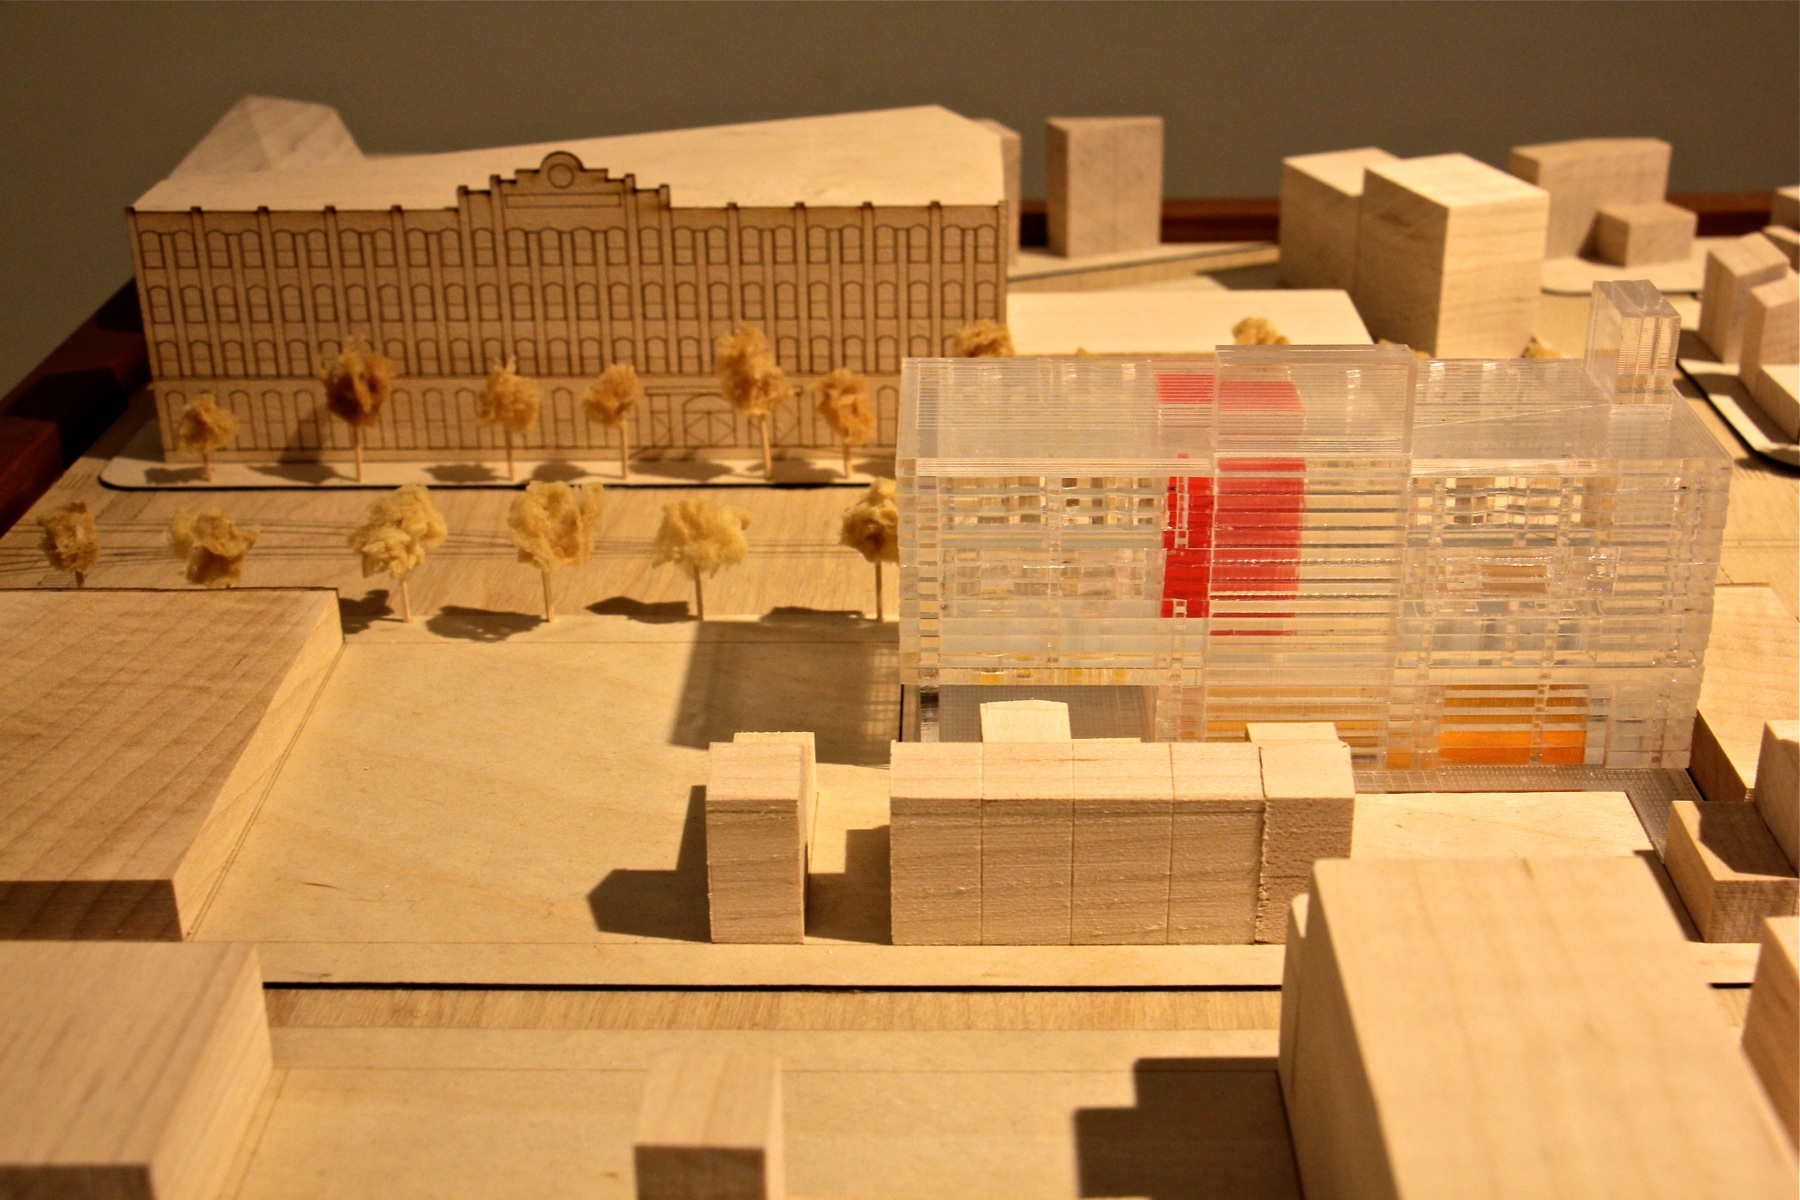 A scale model shows the location of the new Clay Studio (in clear plastic) on North American Street across the street from the Crane Arts building.